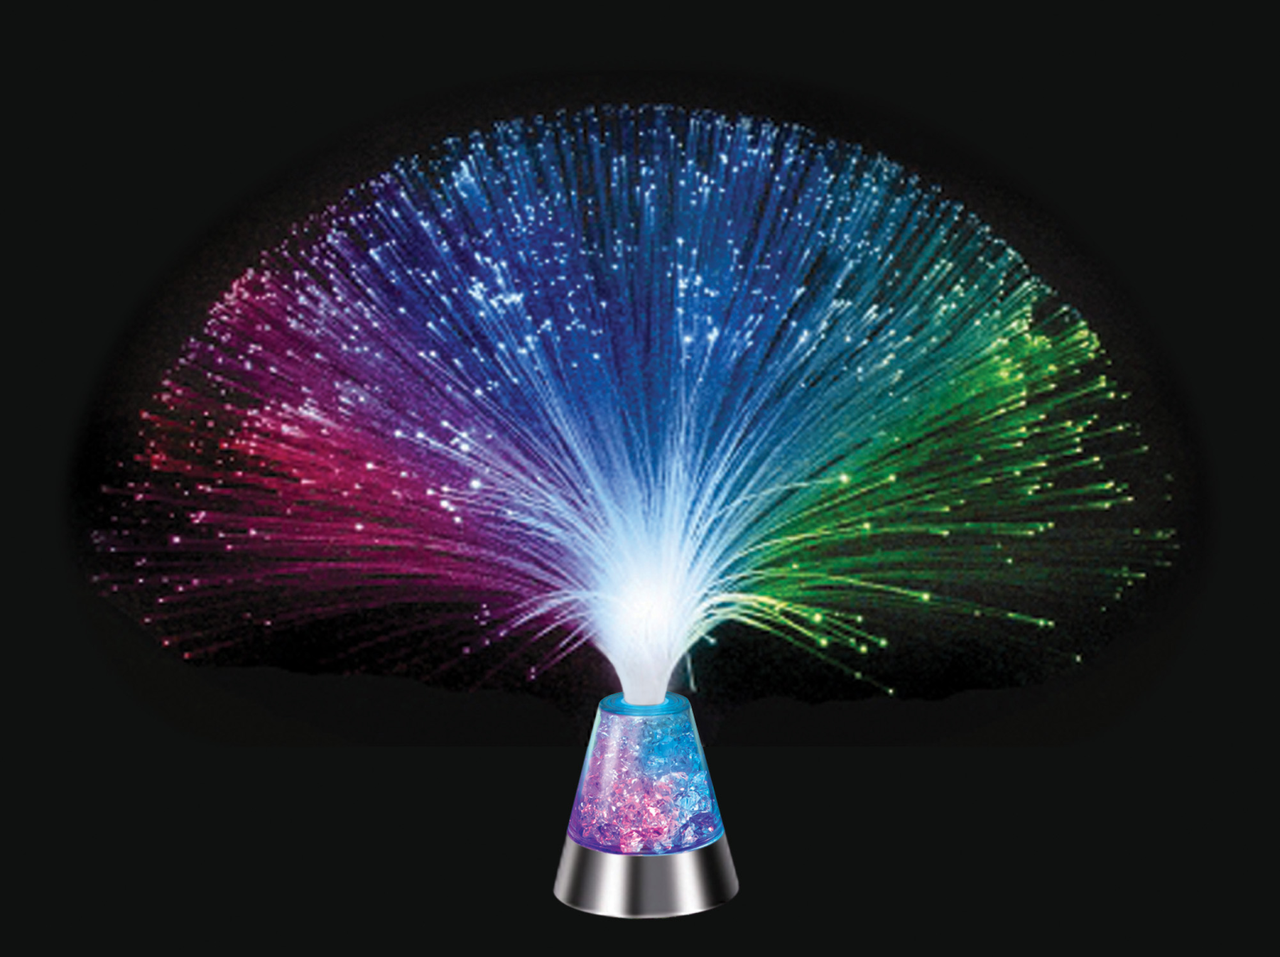 Switch Adapted Fiber Optic Light Up Toy For People With